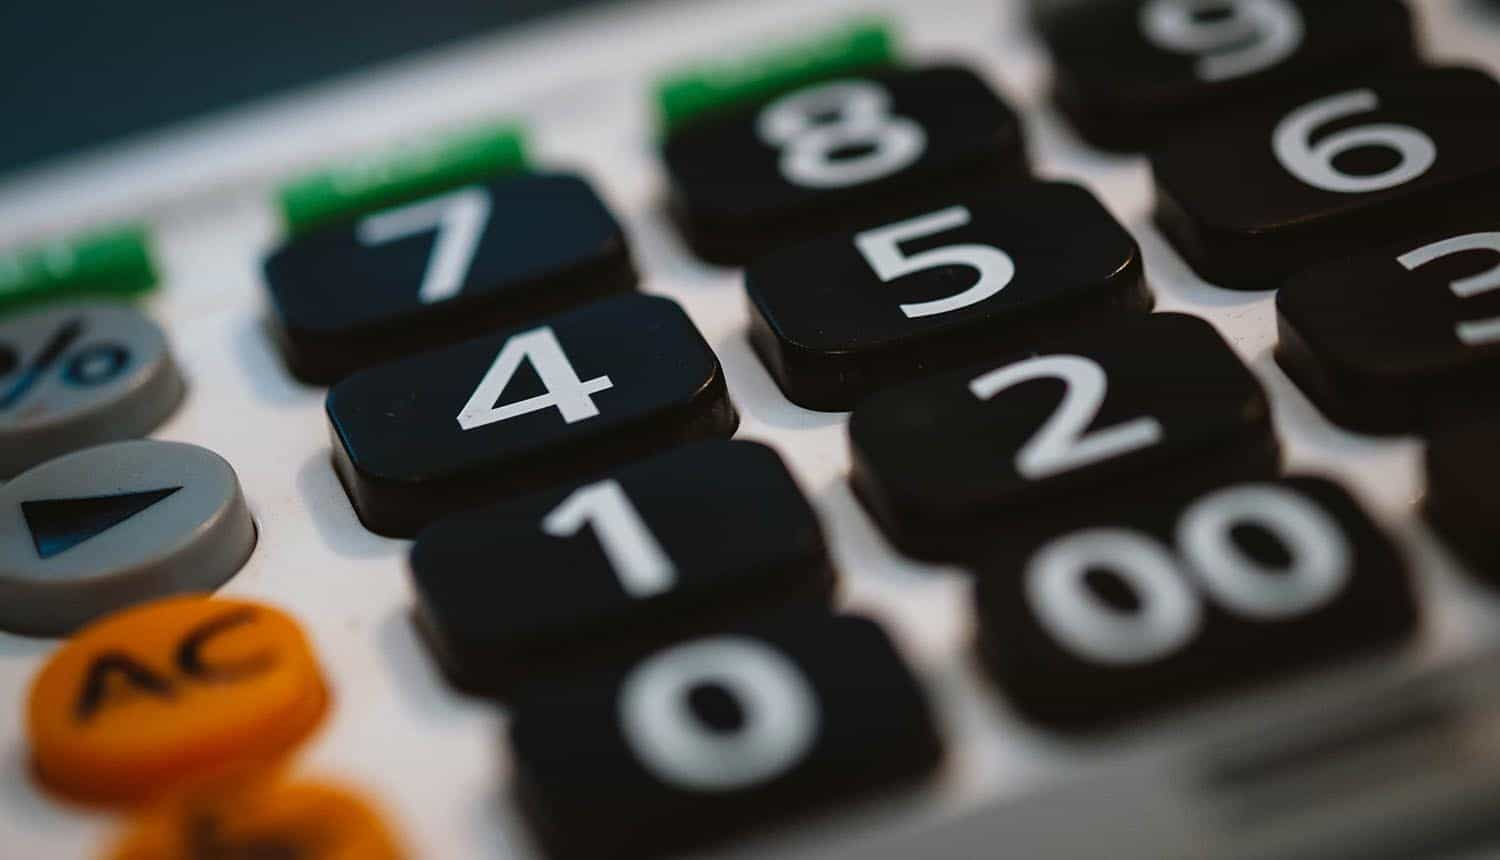 Image of calculator representing accountability as a data protection and privacy principle